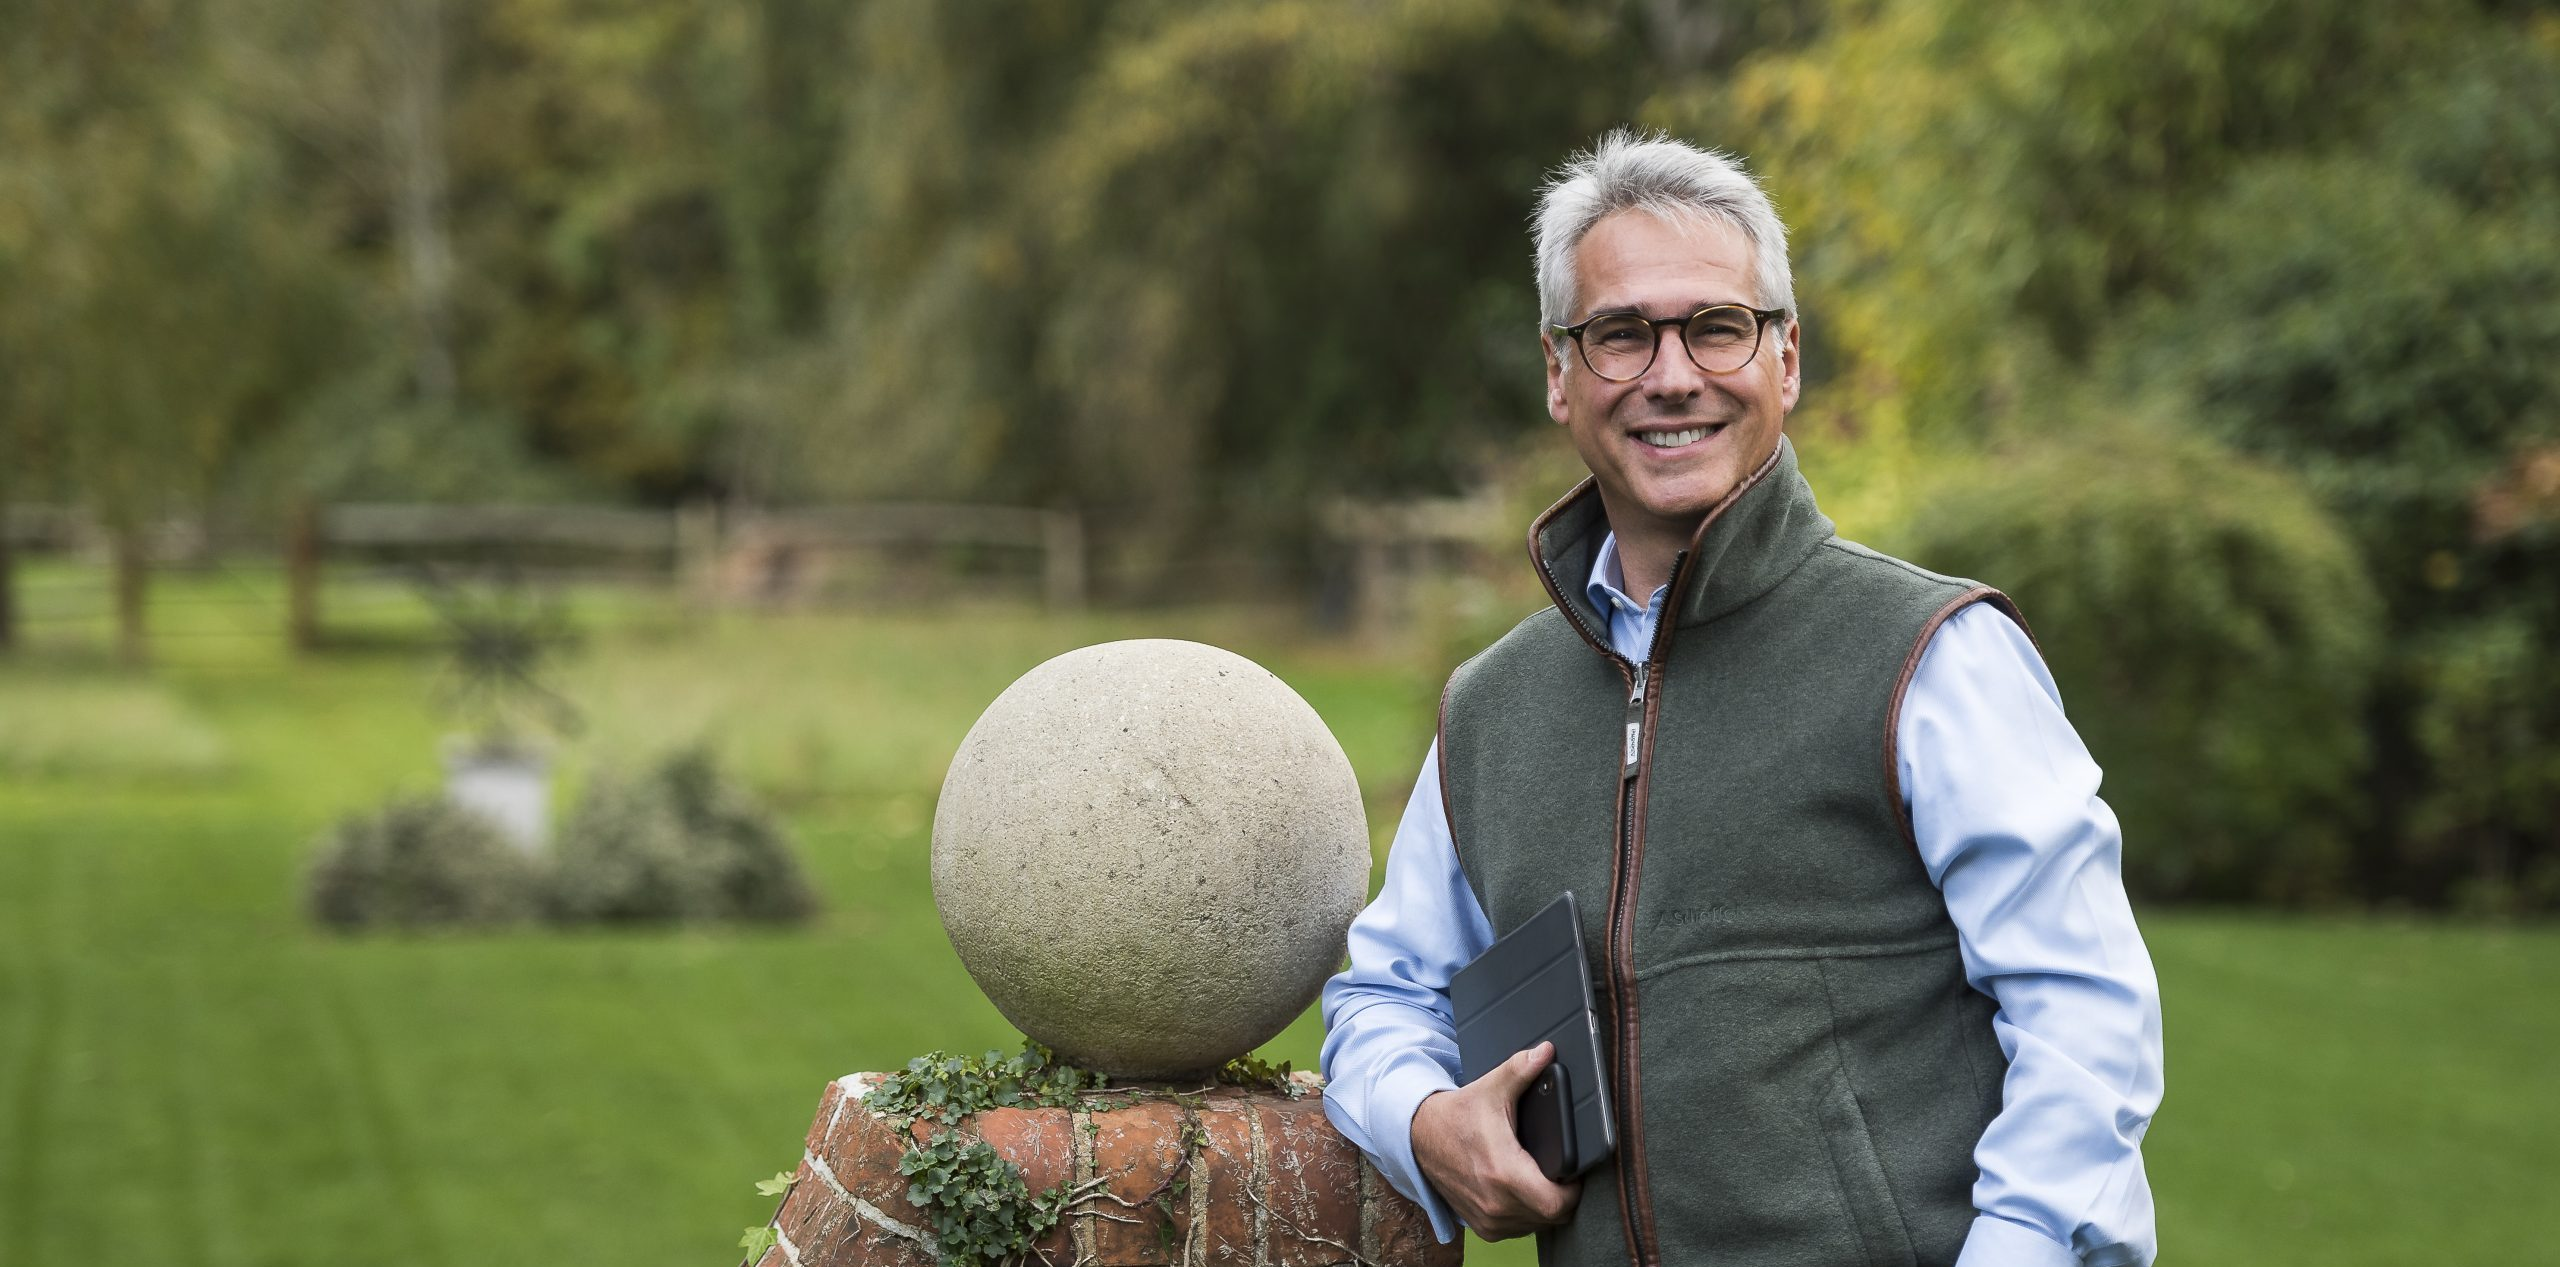 Michael Oury in Garden